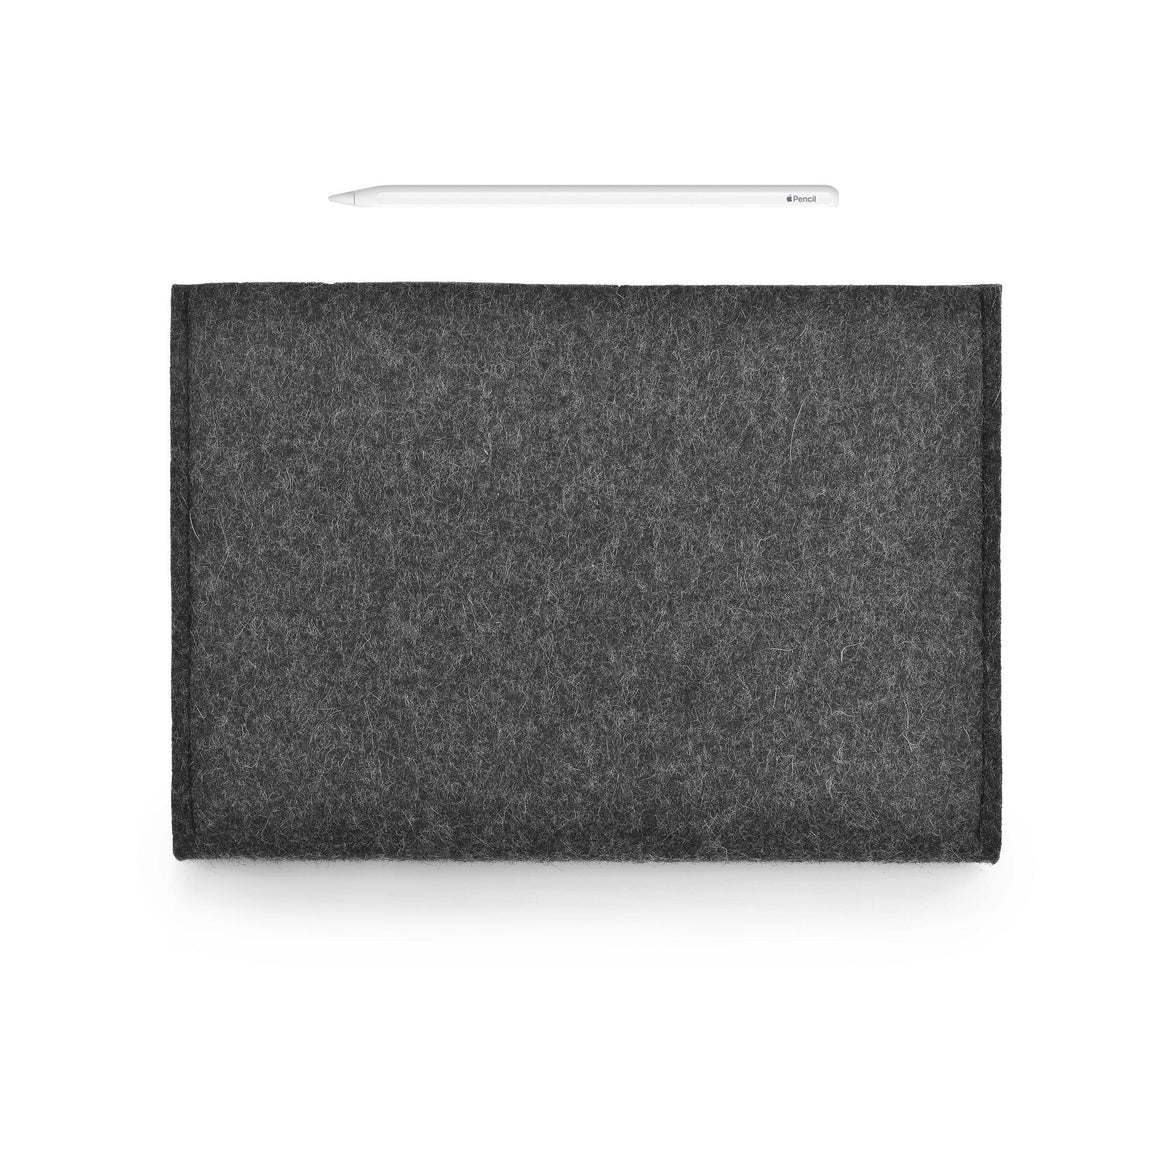 iPad Wool Felt Cover Charcoal Landscape with Pencil Holder